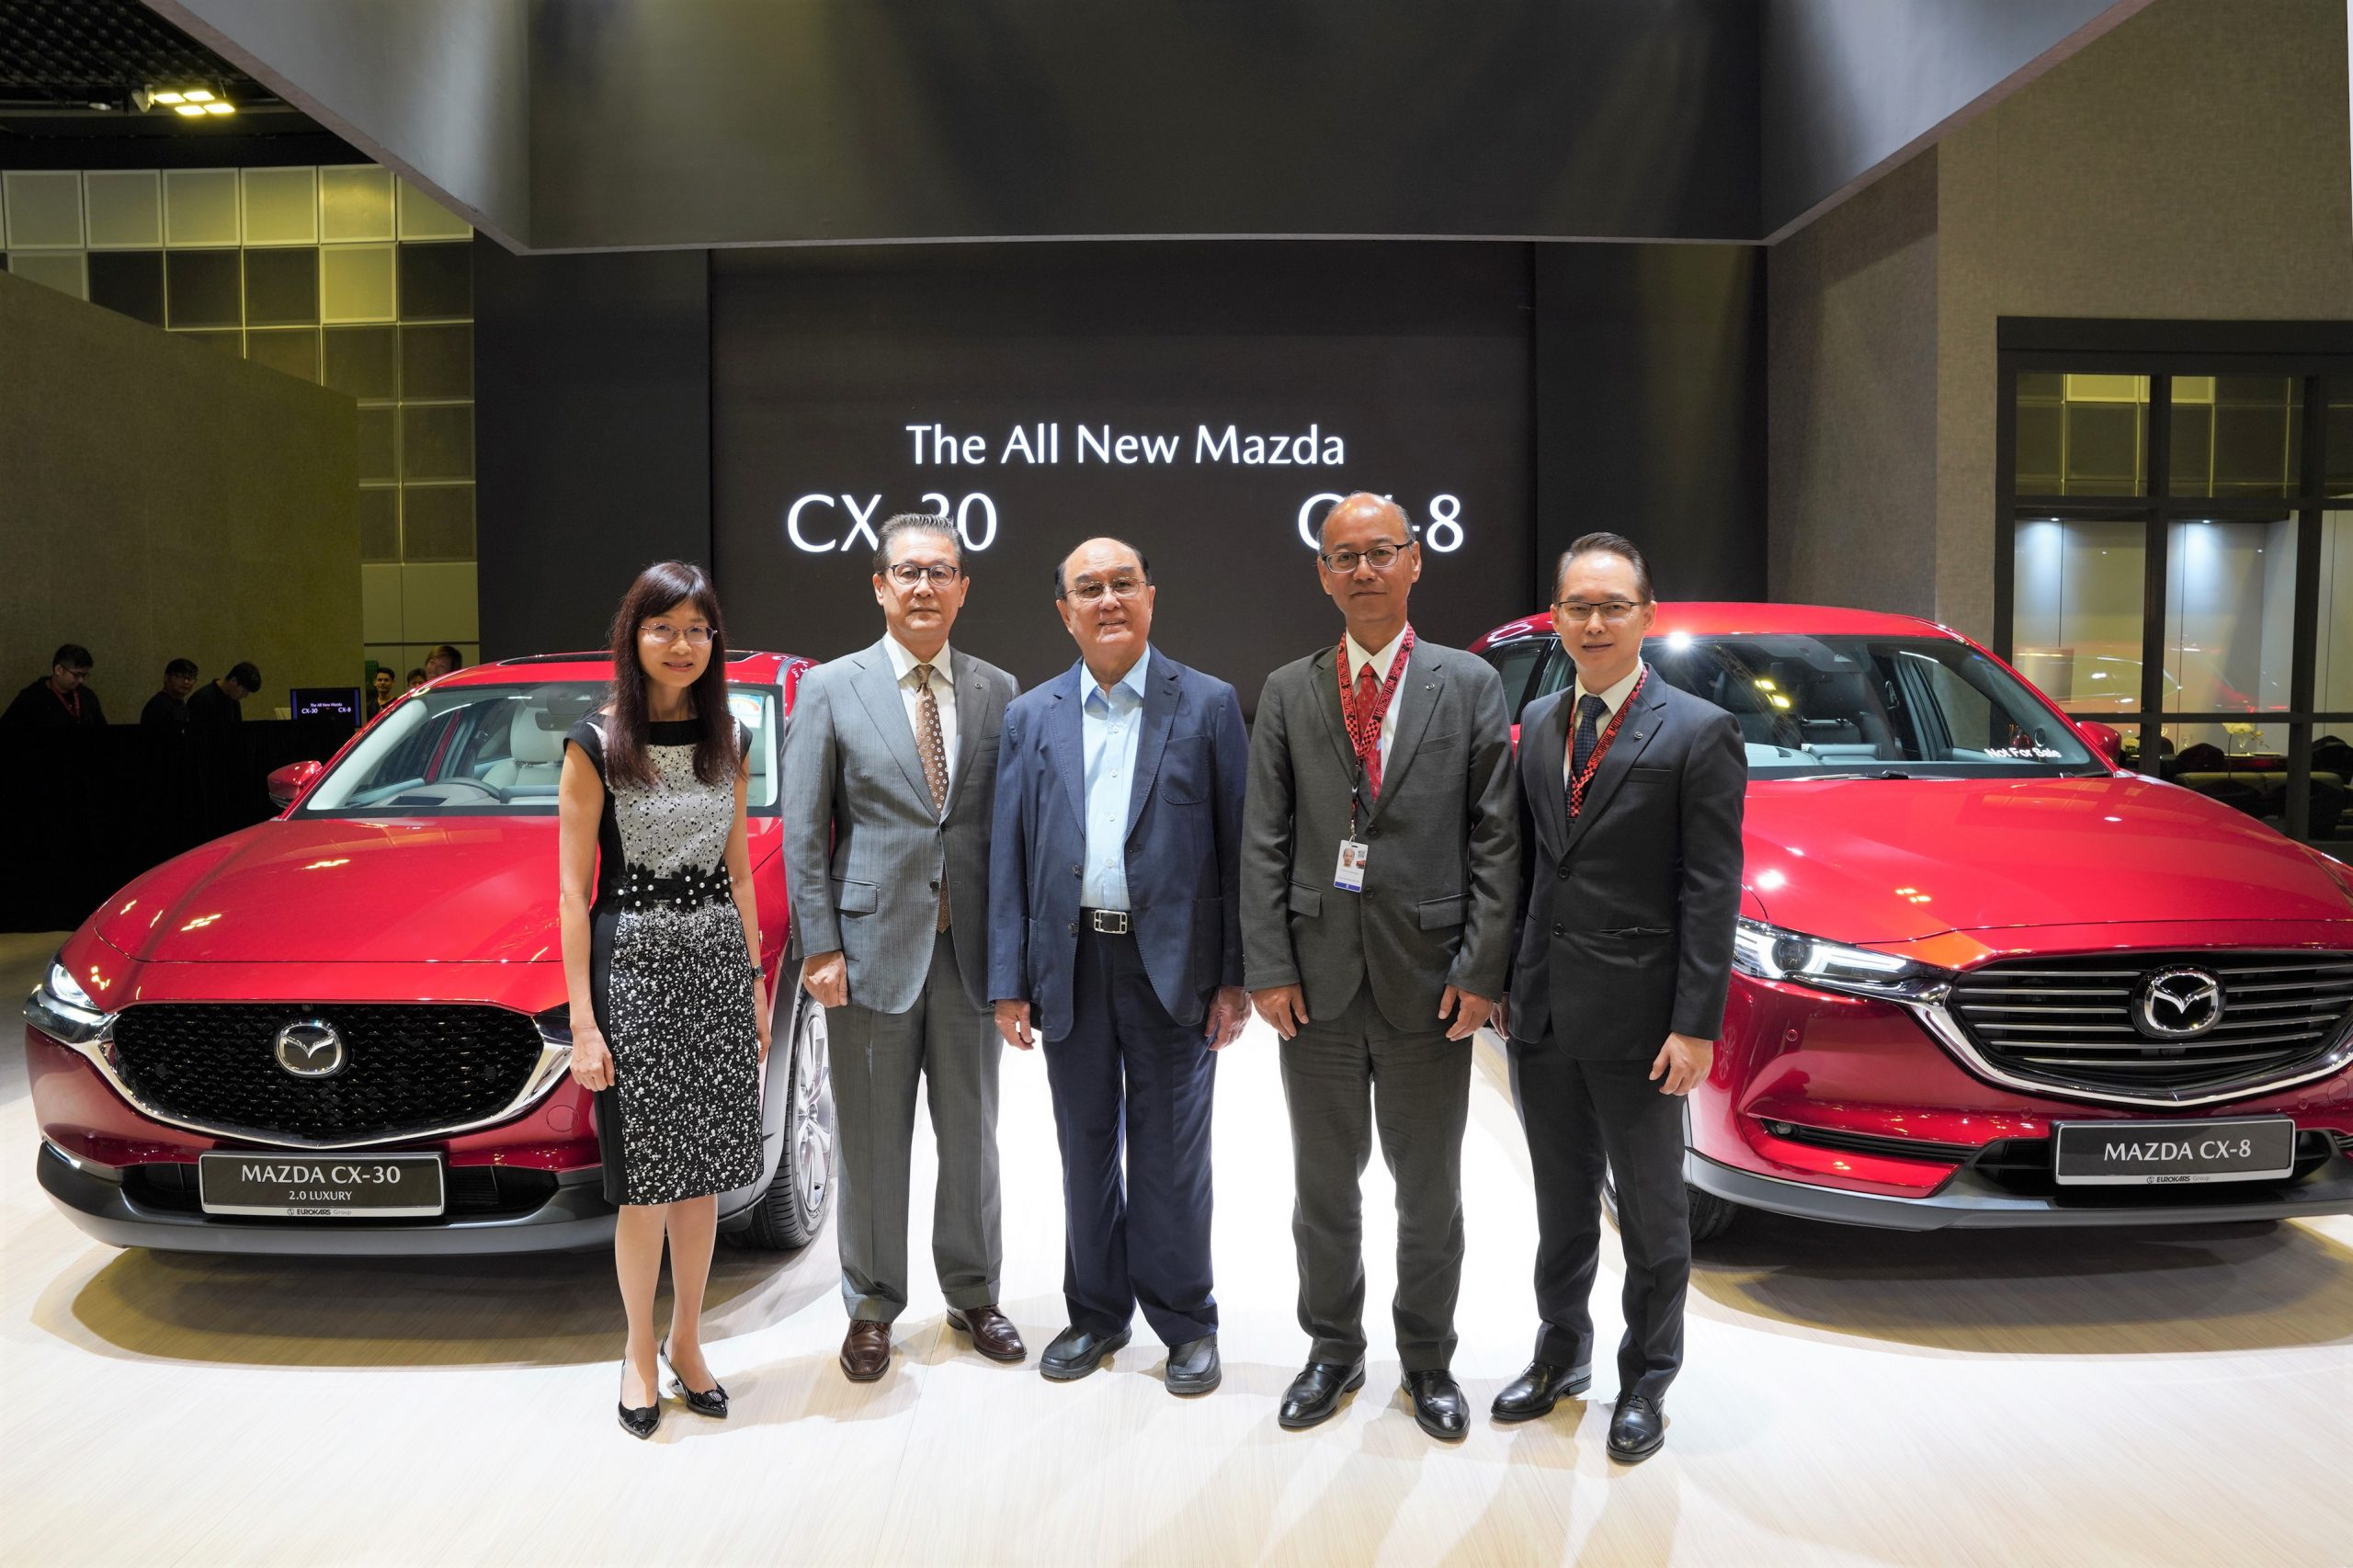 Senior Management representatives from Eurokars Group and Mazda Motor Corporation with the all-new Mazda CX-30 and Mazda CX-8 that were unveiled at the Singapore Motorshow 2020